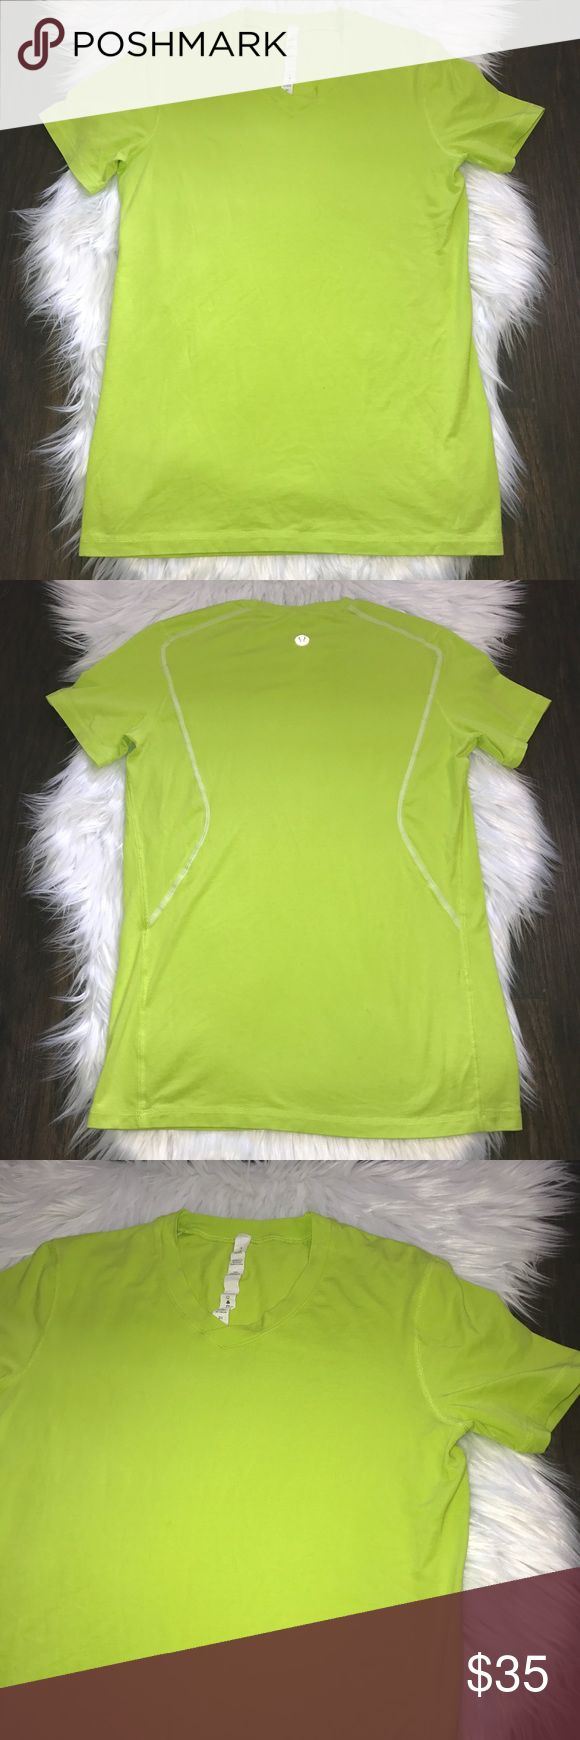 "Lululemon Men's Lime Green Short Sleeve Shirt This nice men's Lululemon shirt is in great condition. No visible flaws Guaranteed authentic- reflective logo shown in photos.  It is a slightly older style with the octagon logo Size small Armpit to armpit: 18"" Total length: 28"" Smoke/pet free home lululemon athletica Shirts Tees - Short Sleeve"